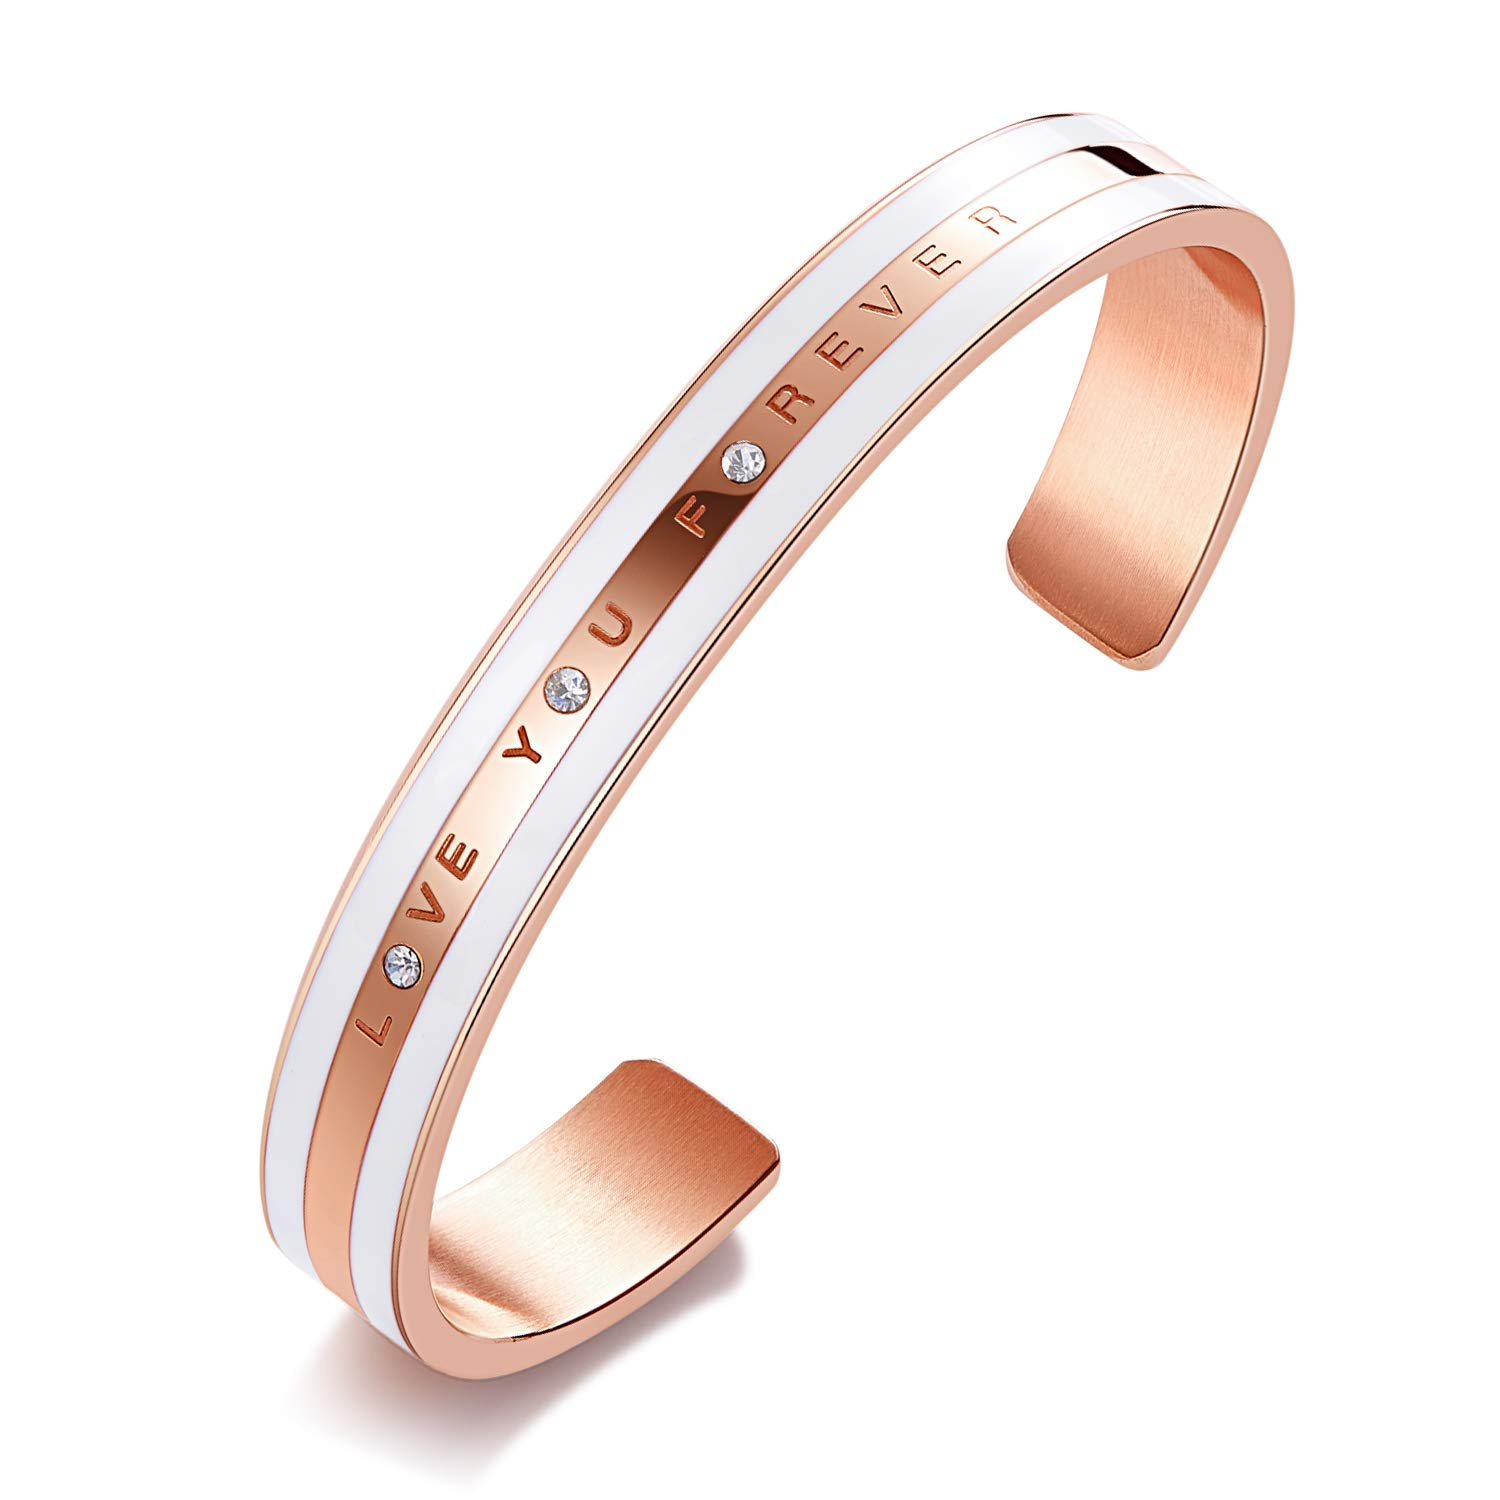 CDE 18K Rose Gold Bracelet Swarovski Crystals Bangle Cuff Love You Forever Stainless Steel Jewelry for Women Gift Fits 6-7.5 inch Wrists, Gift for Mothers Day